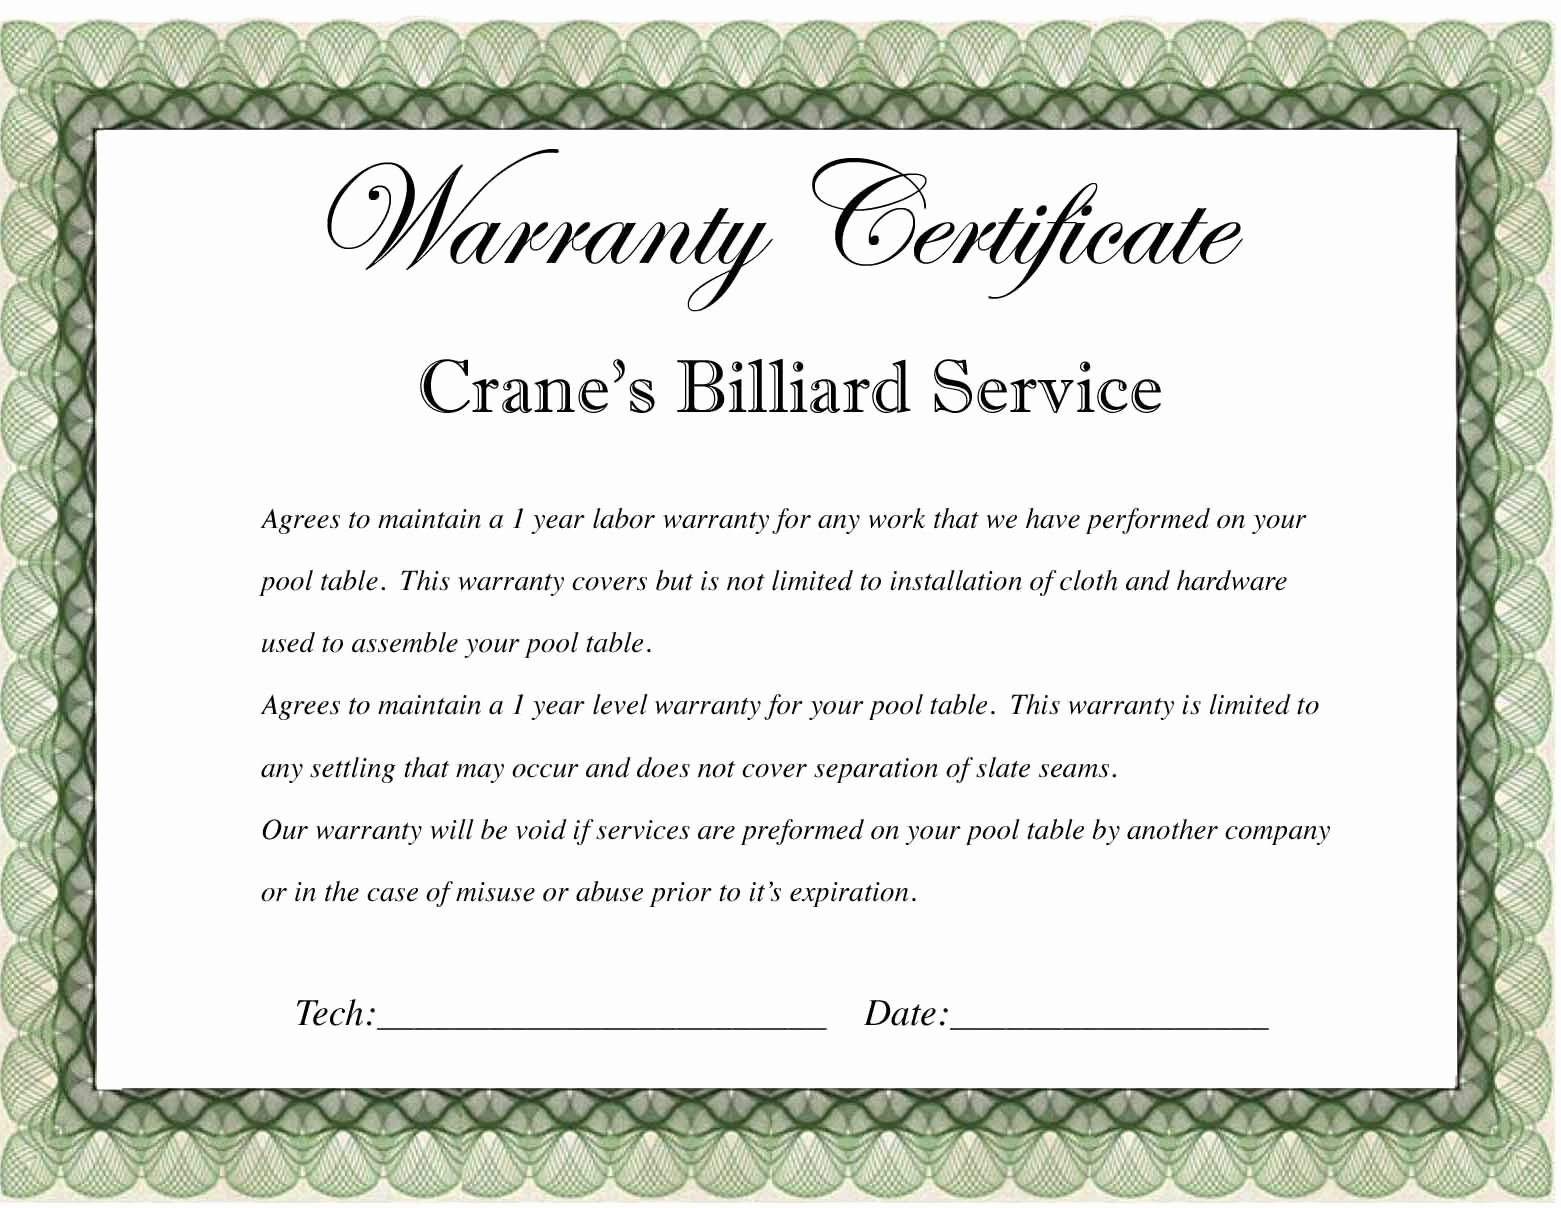 Warranty Certificate Template Free Best Of Warranty Certificate Template Word Editable Doc